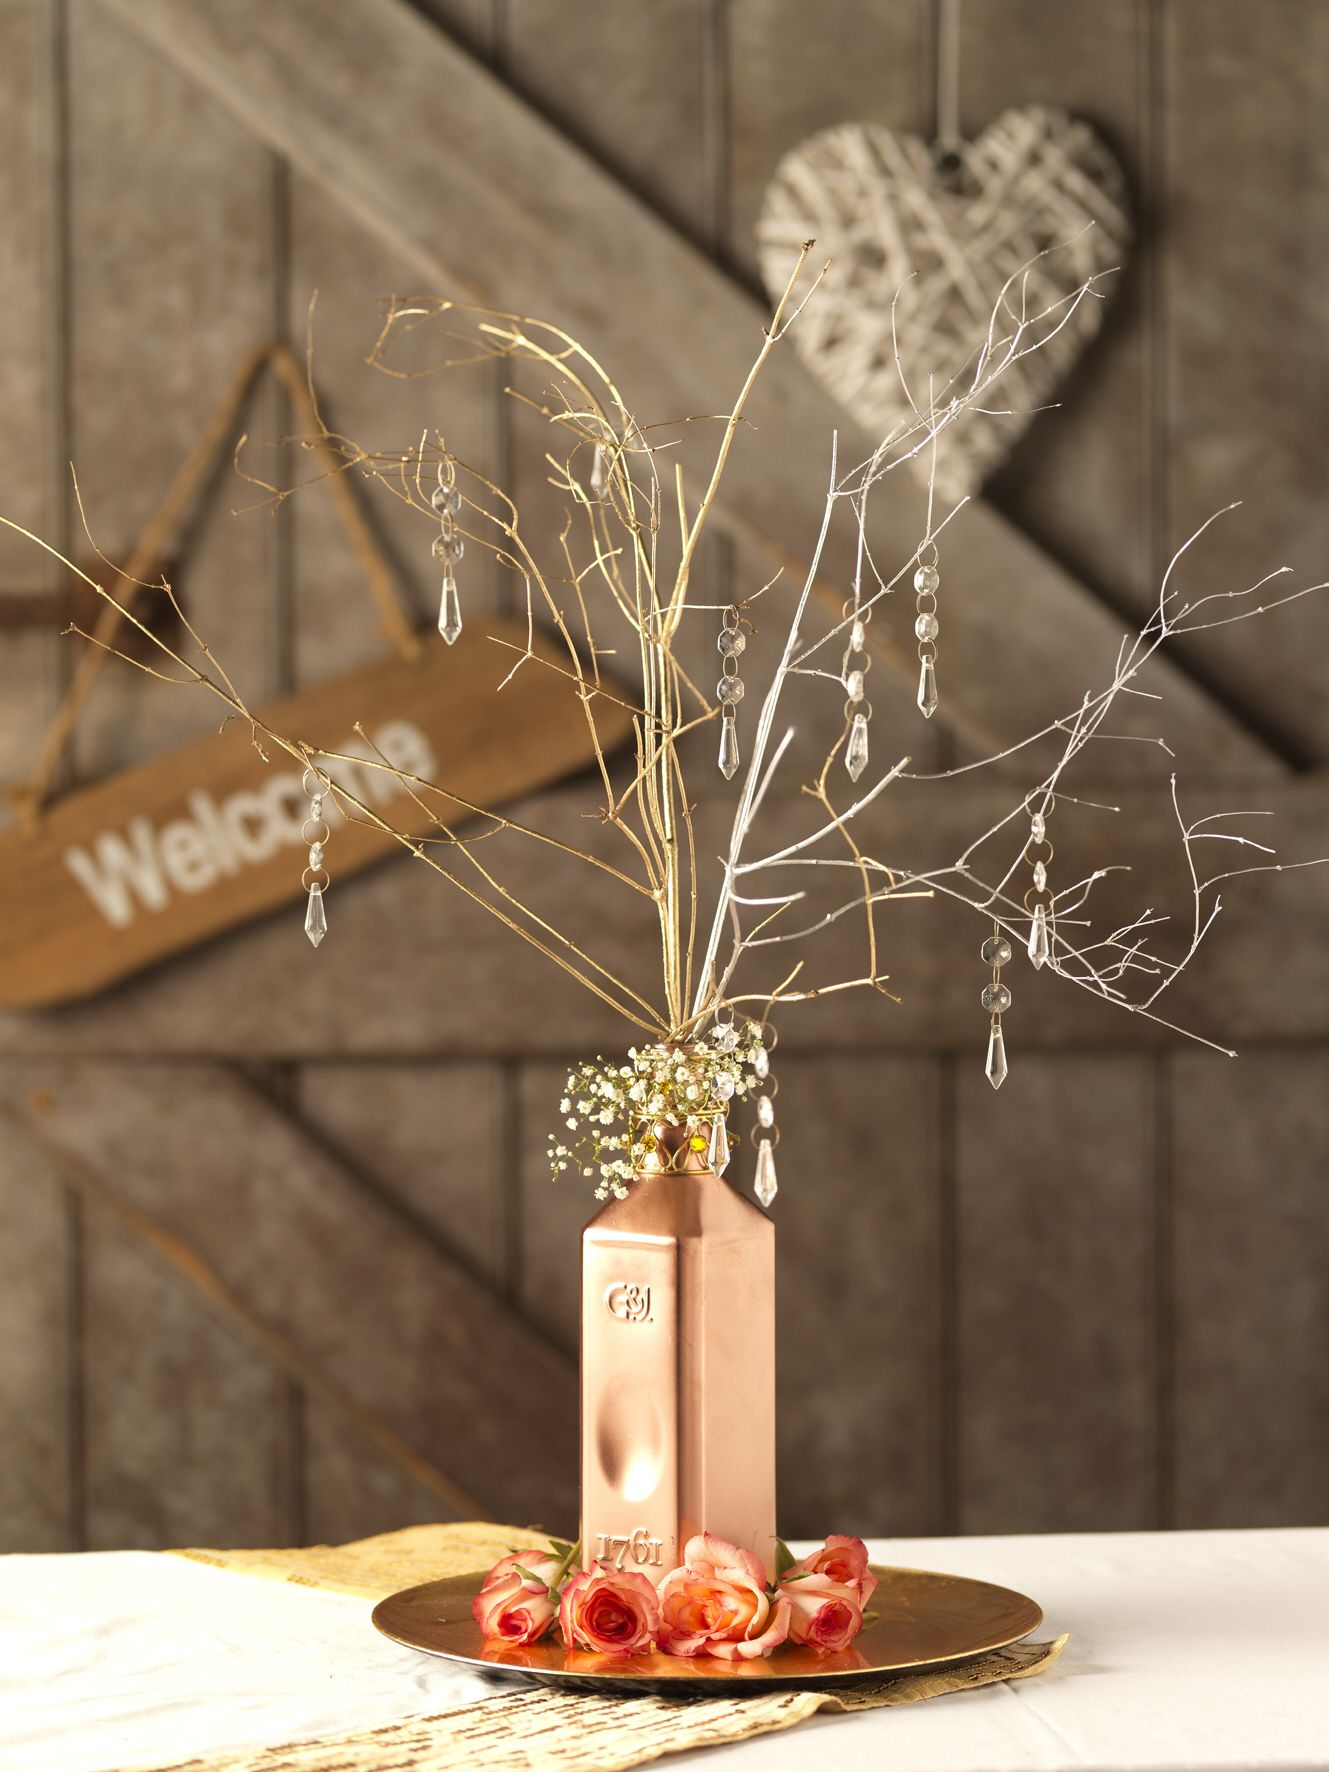 Have a diy wedding and make your own centrepieces diy wedding